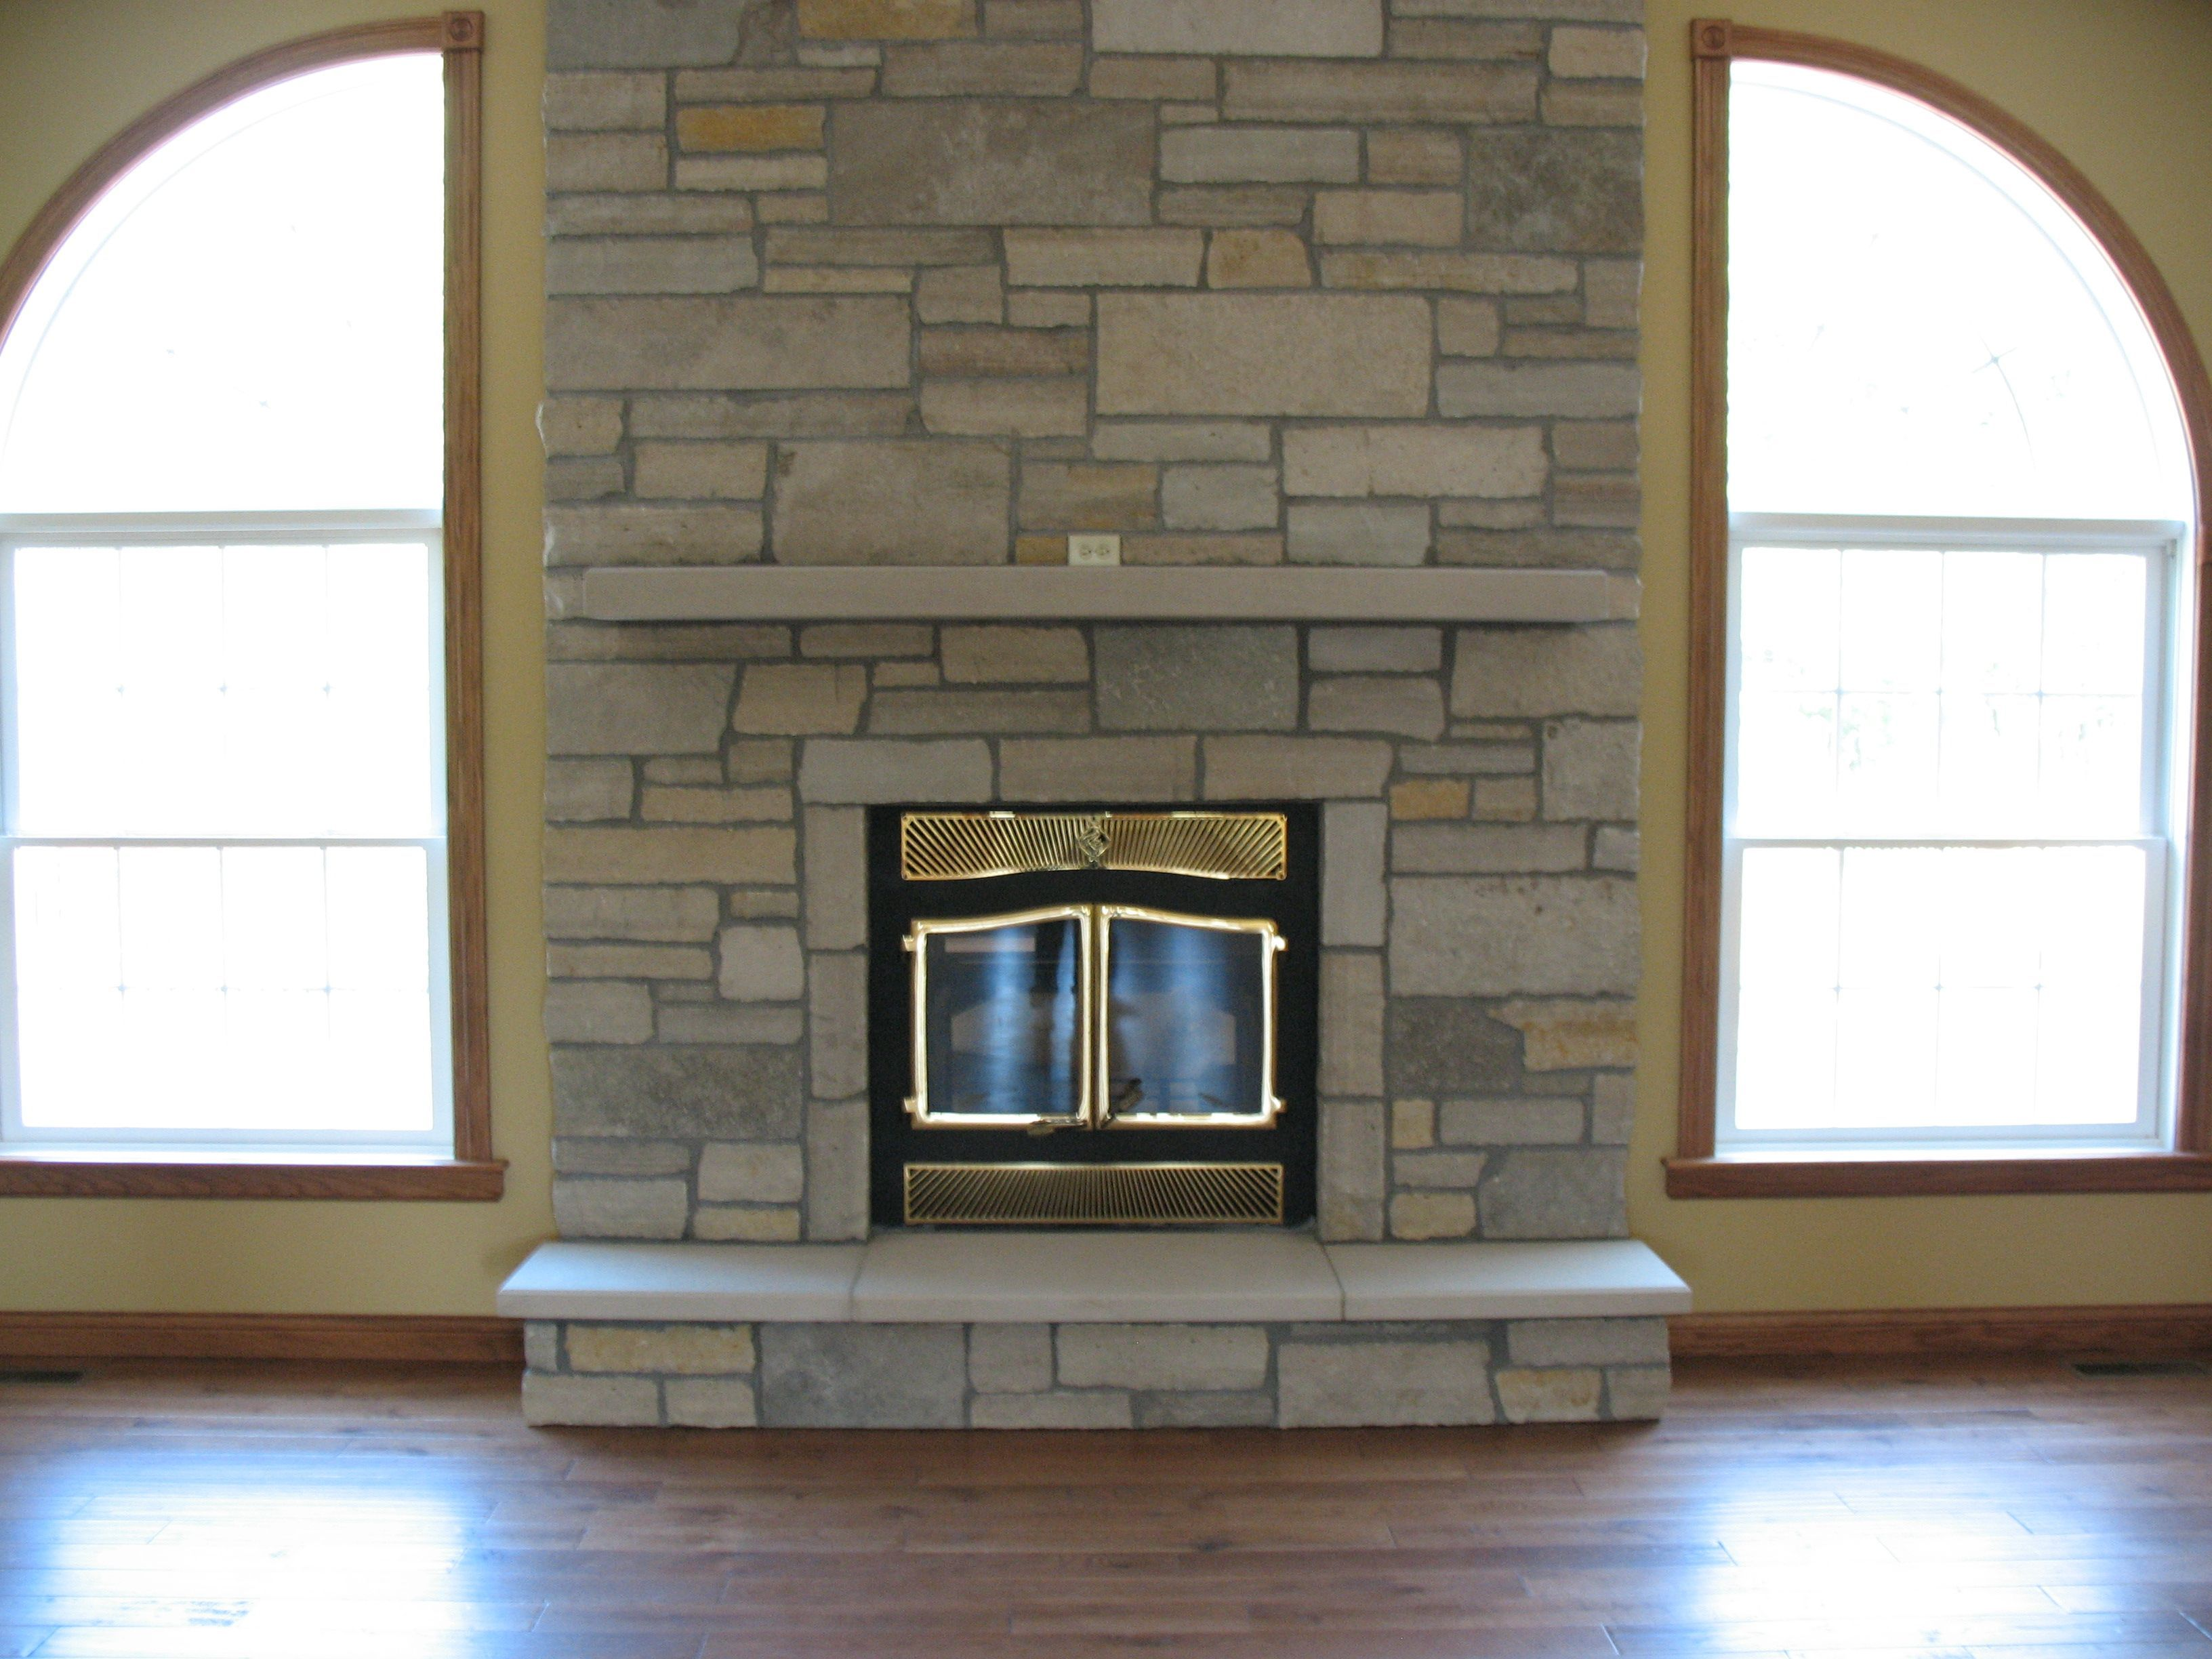 com limestone mantle start stonecrafters pin hearth design raised fireplace via fm hearths cast image mantelpiece with stone surround internal mantels and